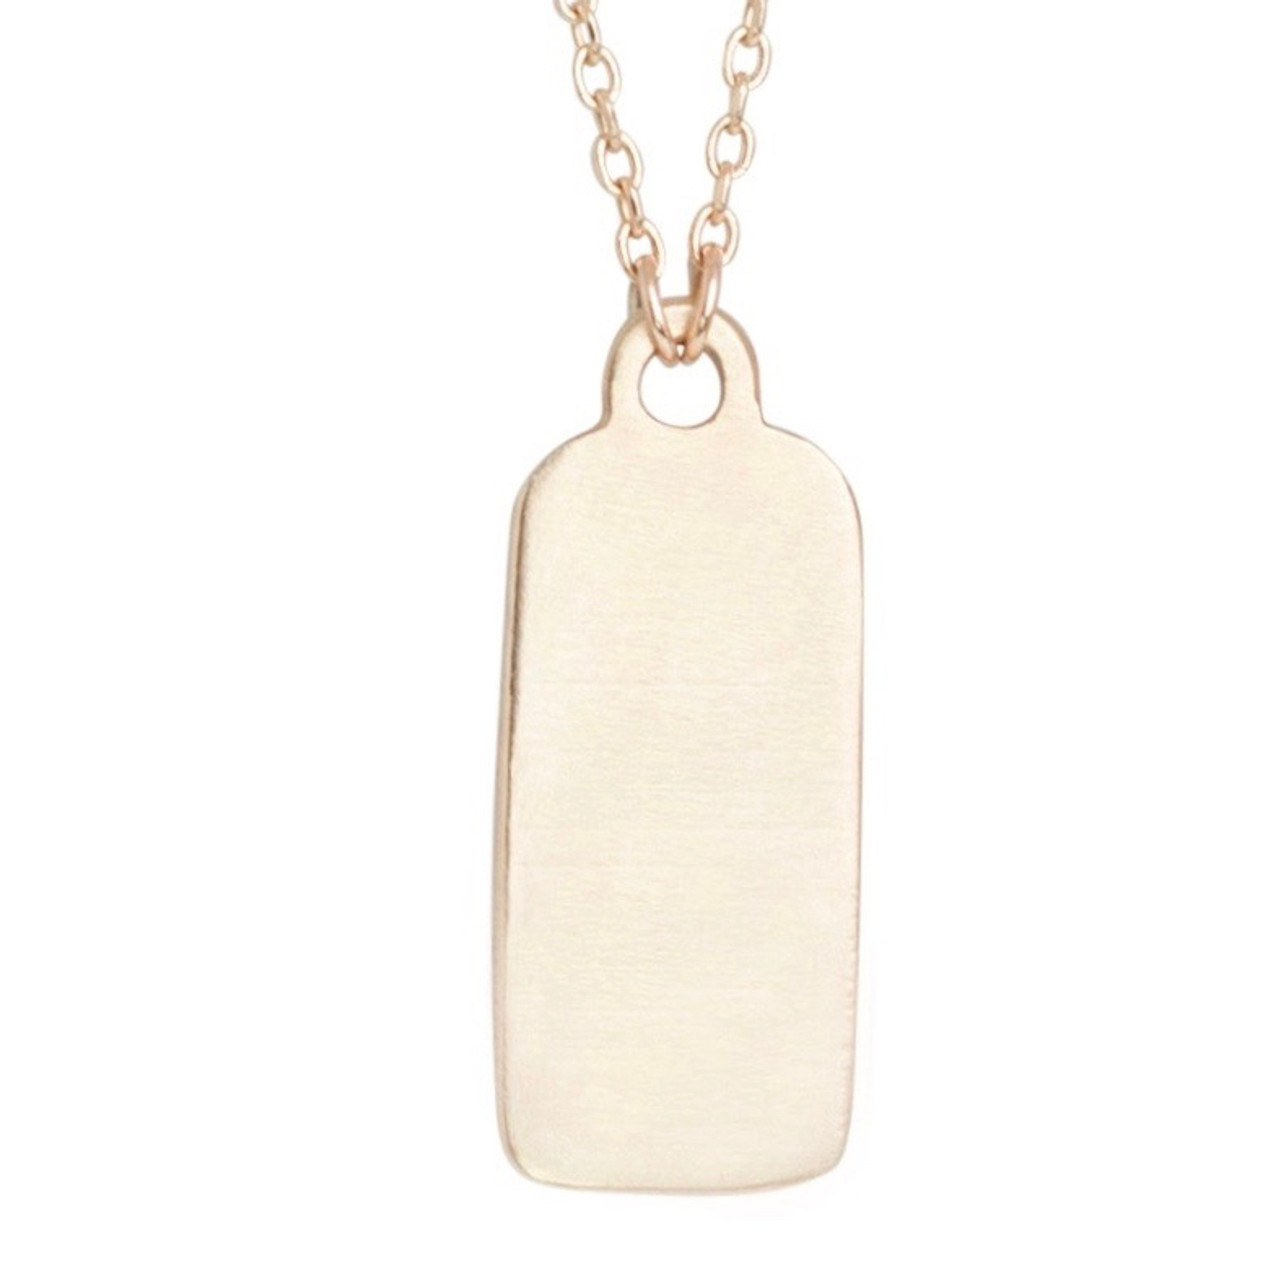 id tag necklace plain